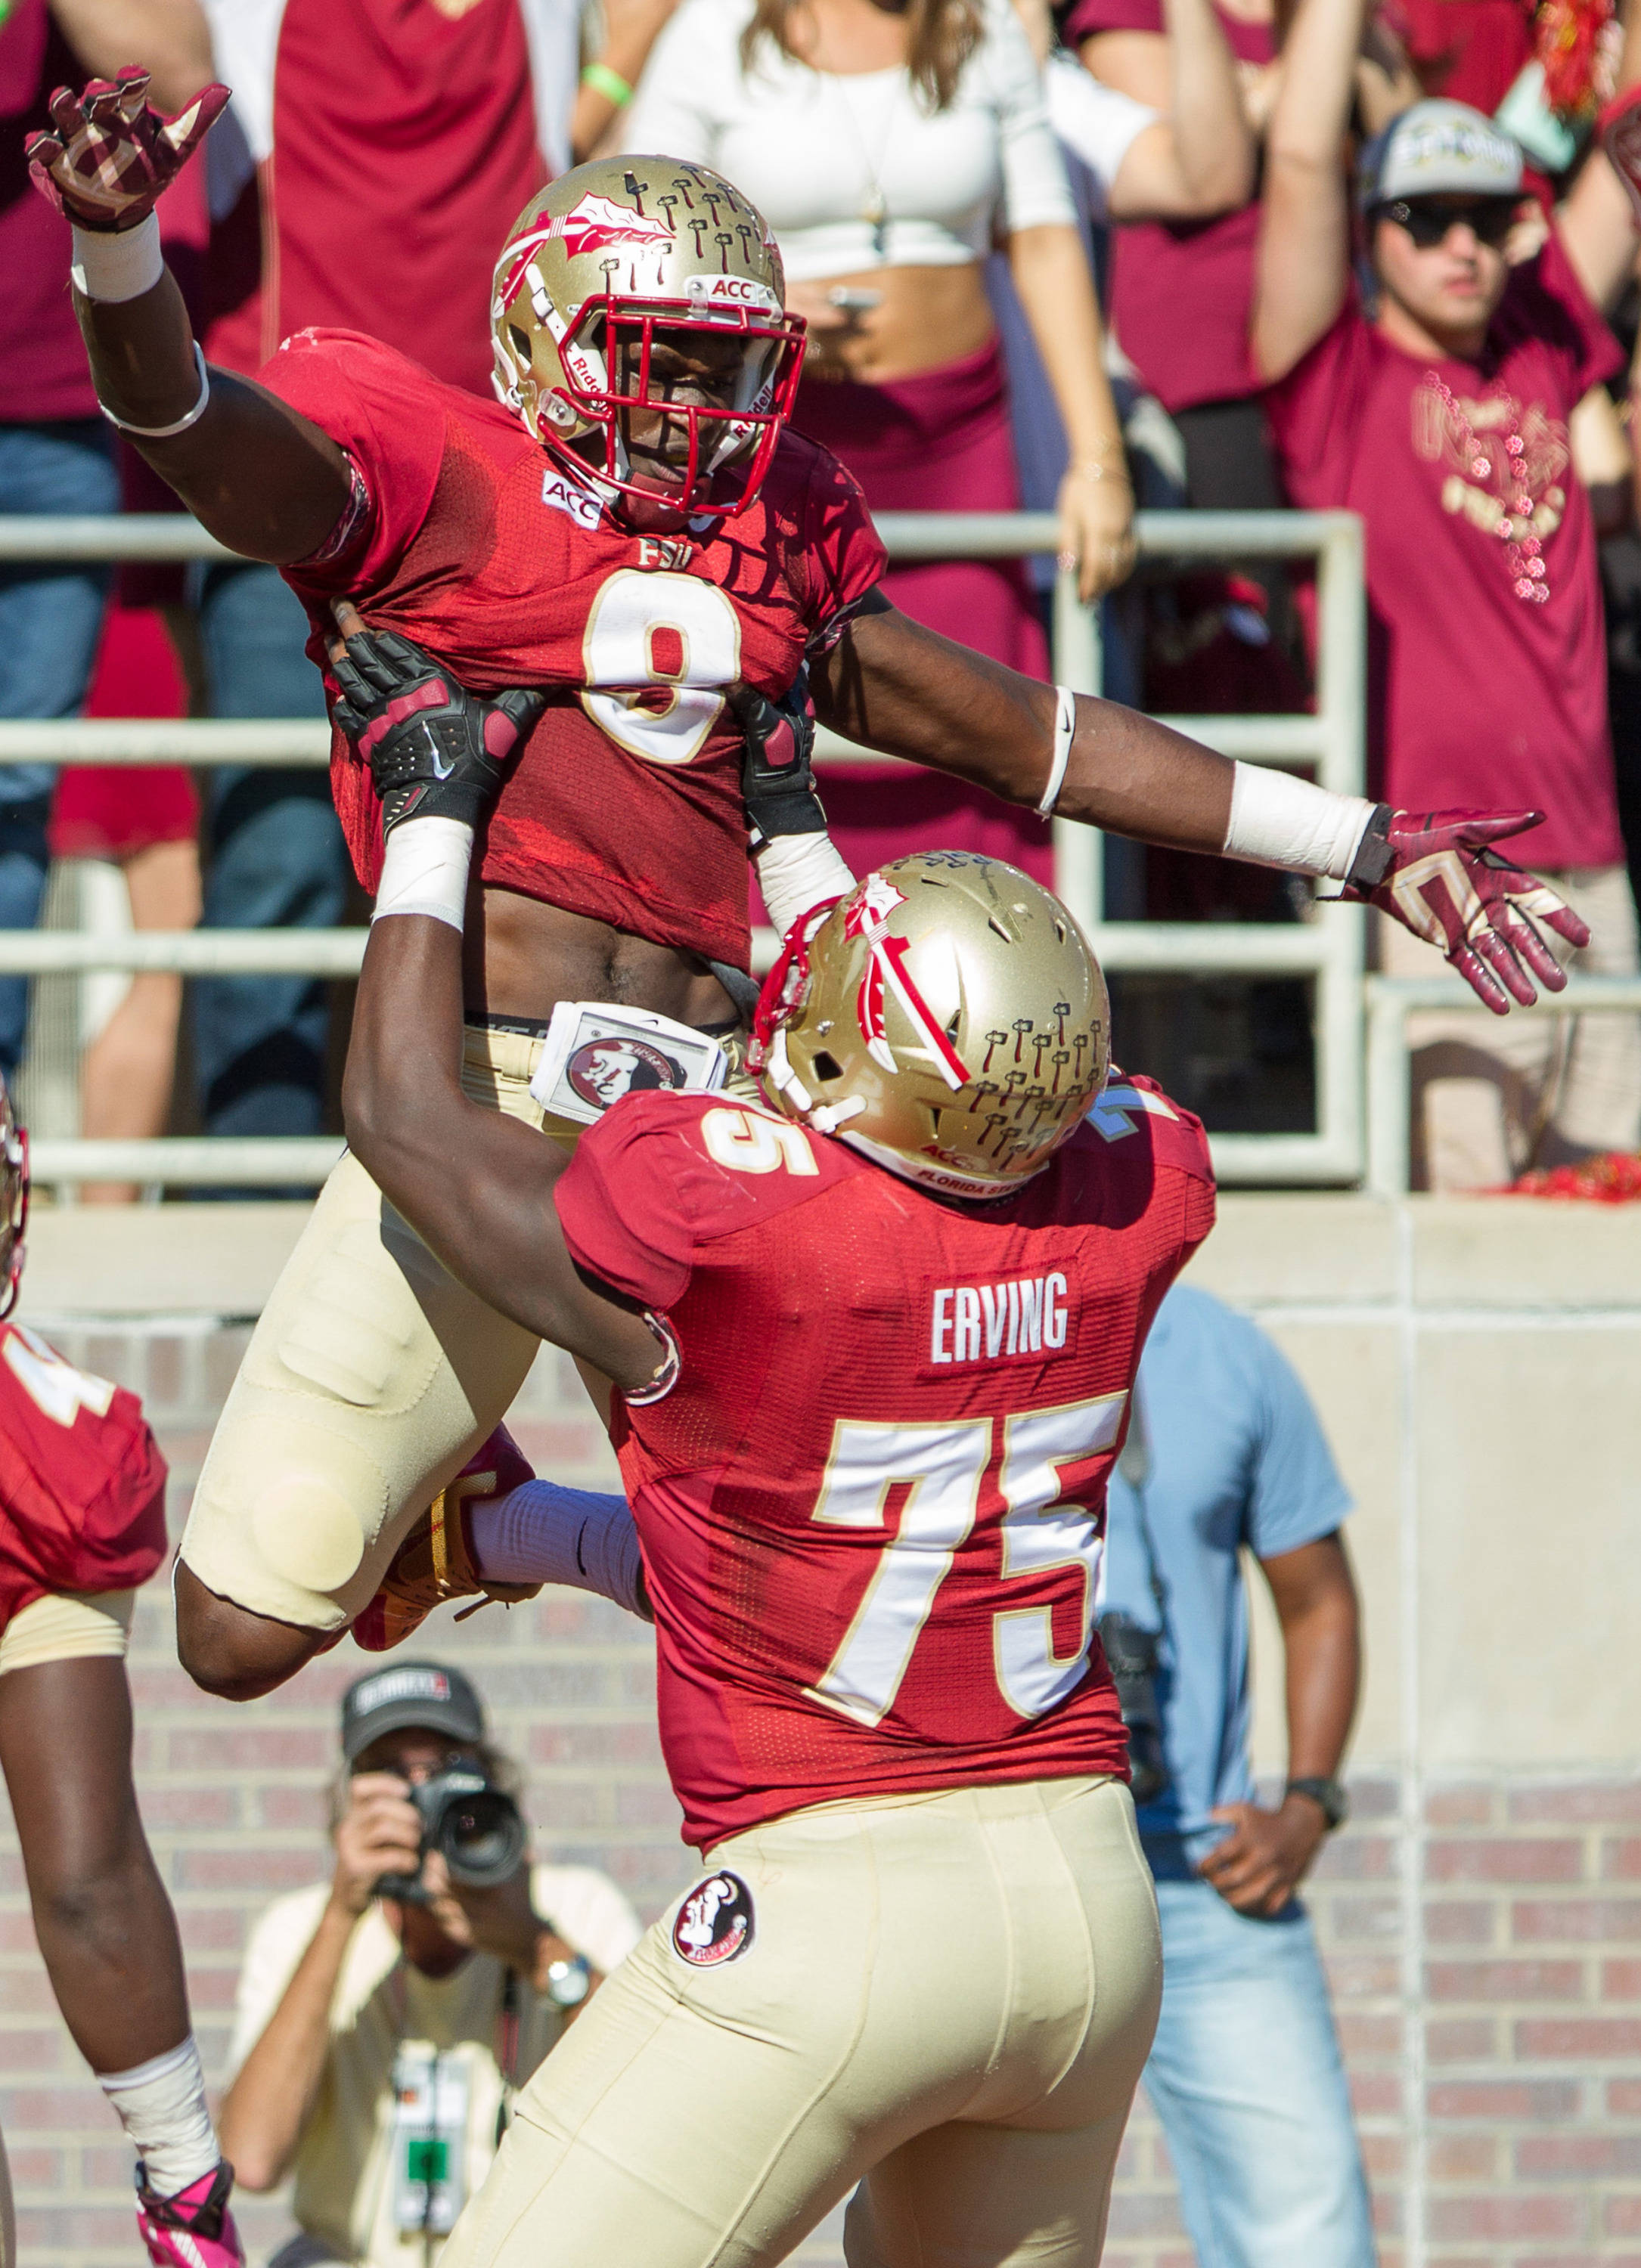 Karlos Williams (9) celebrates after scoring a touchdown during FSU Football's 49-17 win over NC State on Saturday, October 26, 2013 in Tallahassee, Fla. Photo by Michael Schwarz.